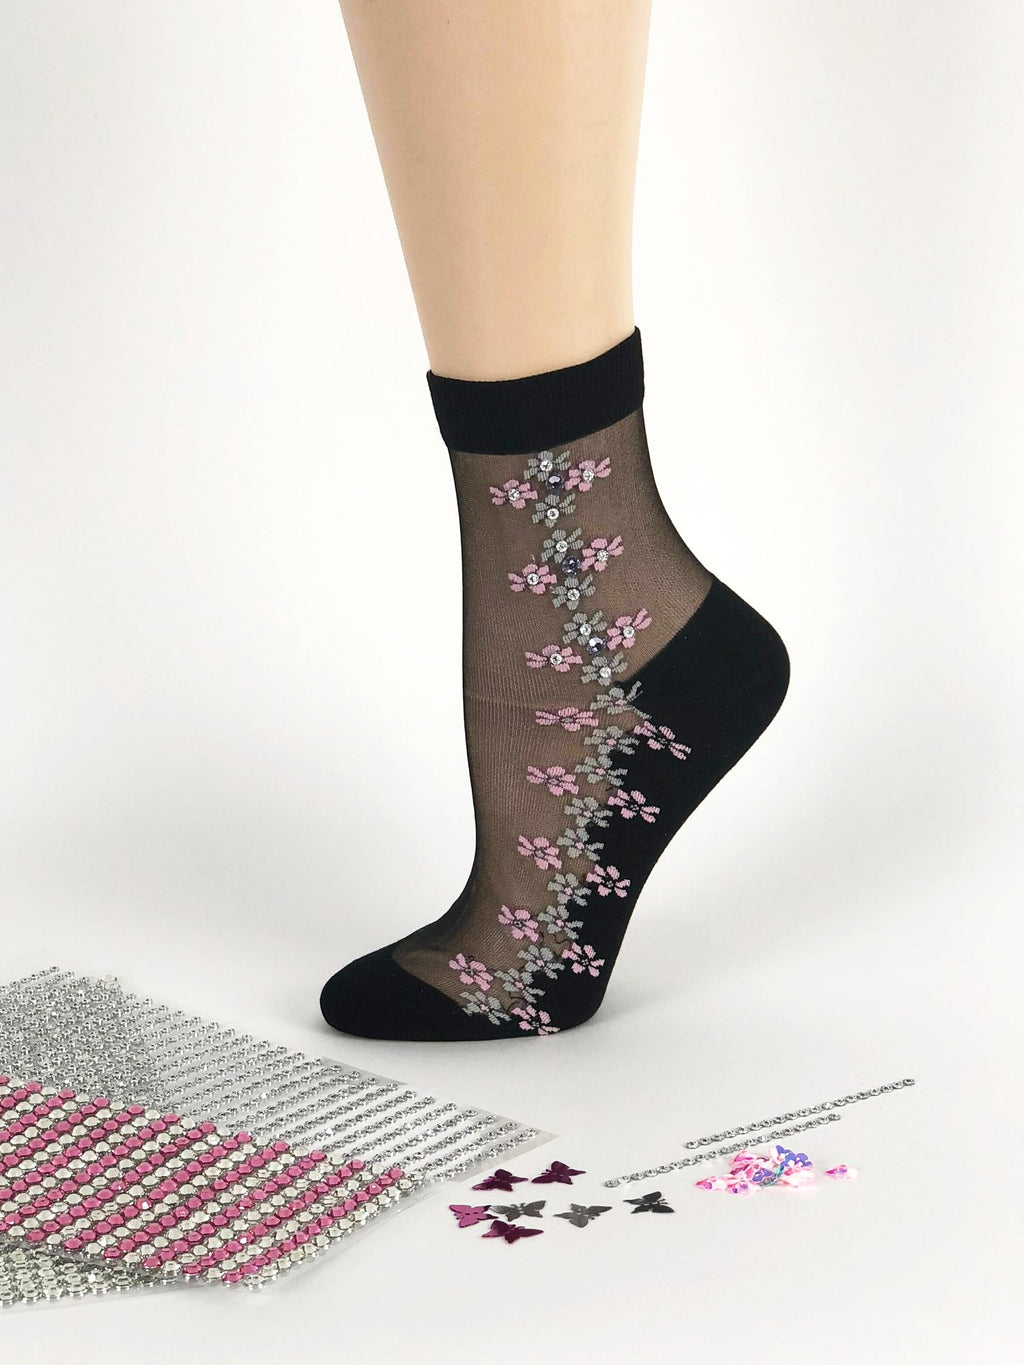 Georgeous Pink/Silver Flowers Sheer Socks - Global Trendz Fashion®